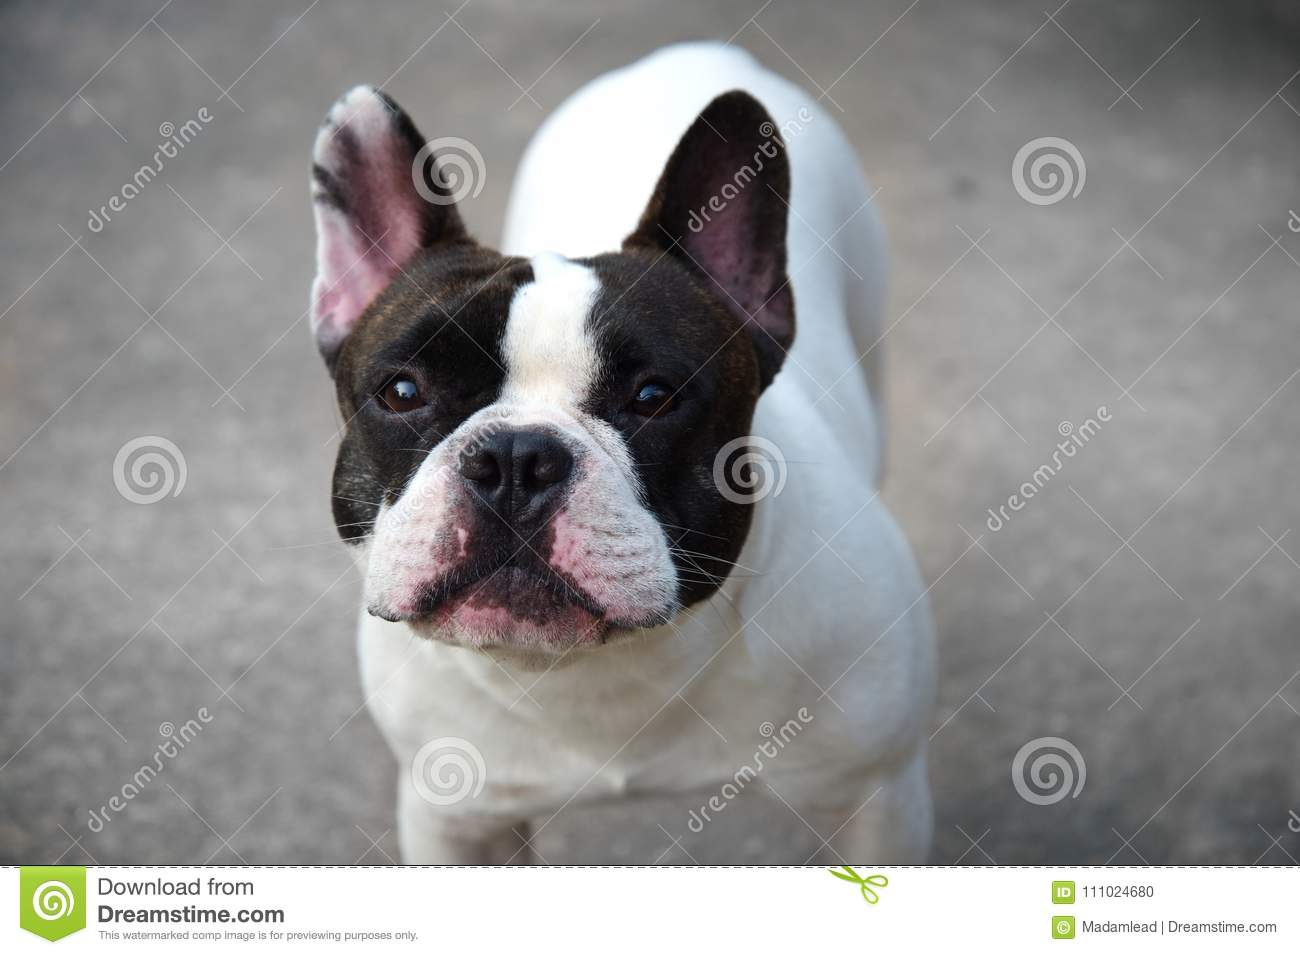 50 399 Cute Baby White Dog Photos Free Royalty Free Stock Photos From Dreamstime